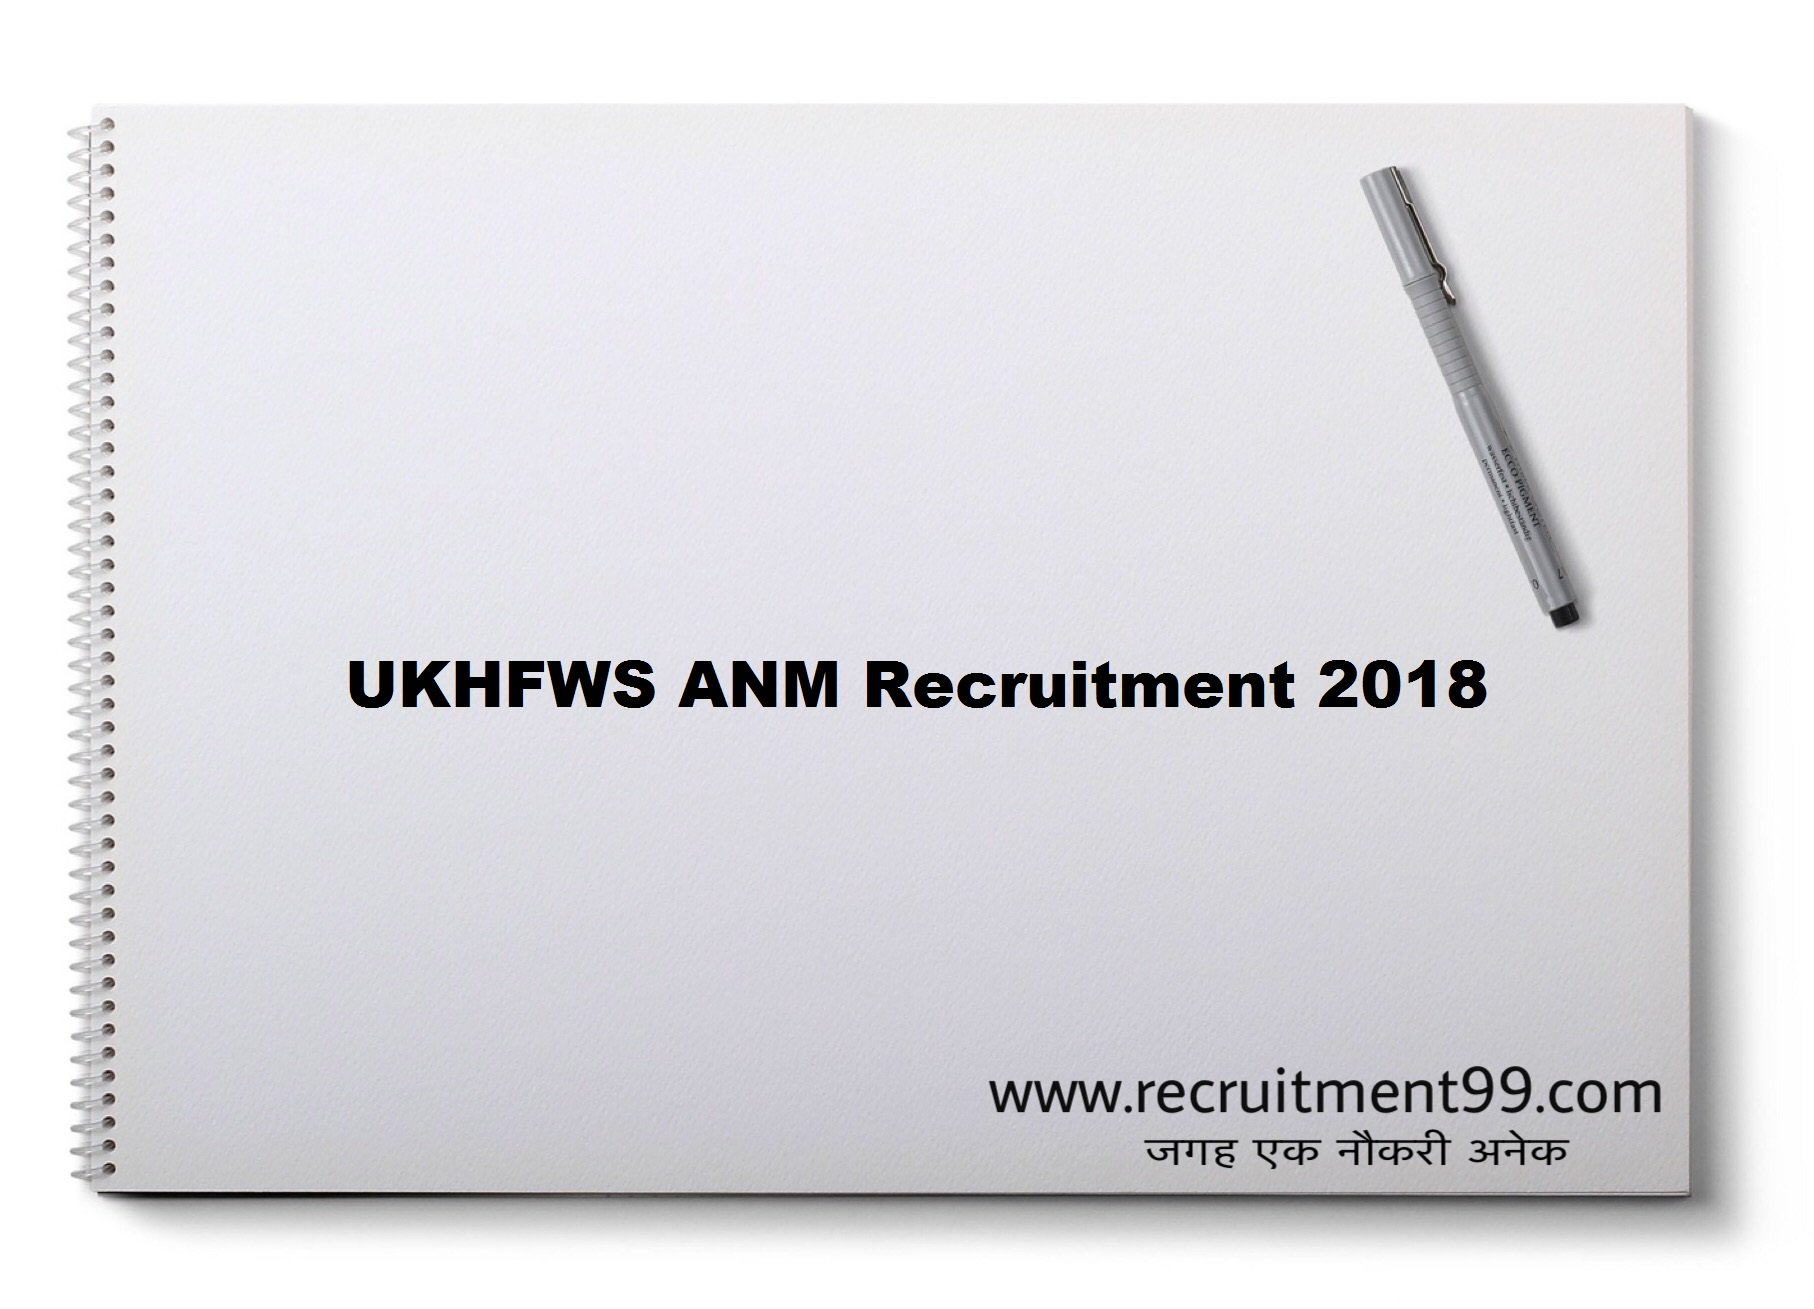 UKHFWS ANM Recruitment Admit Card Result 2018